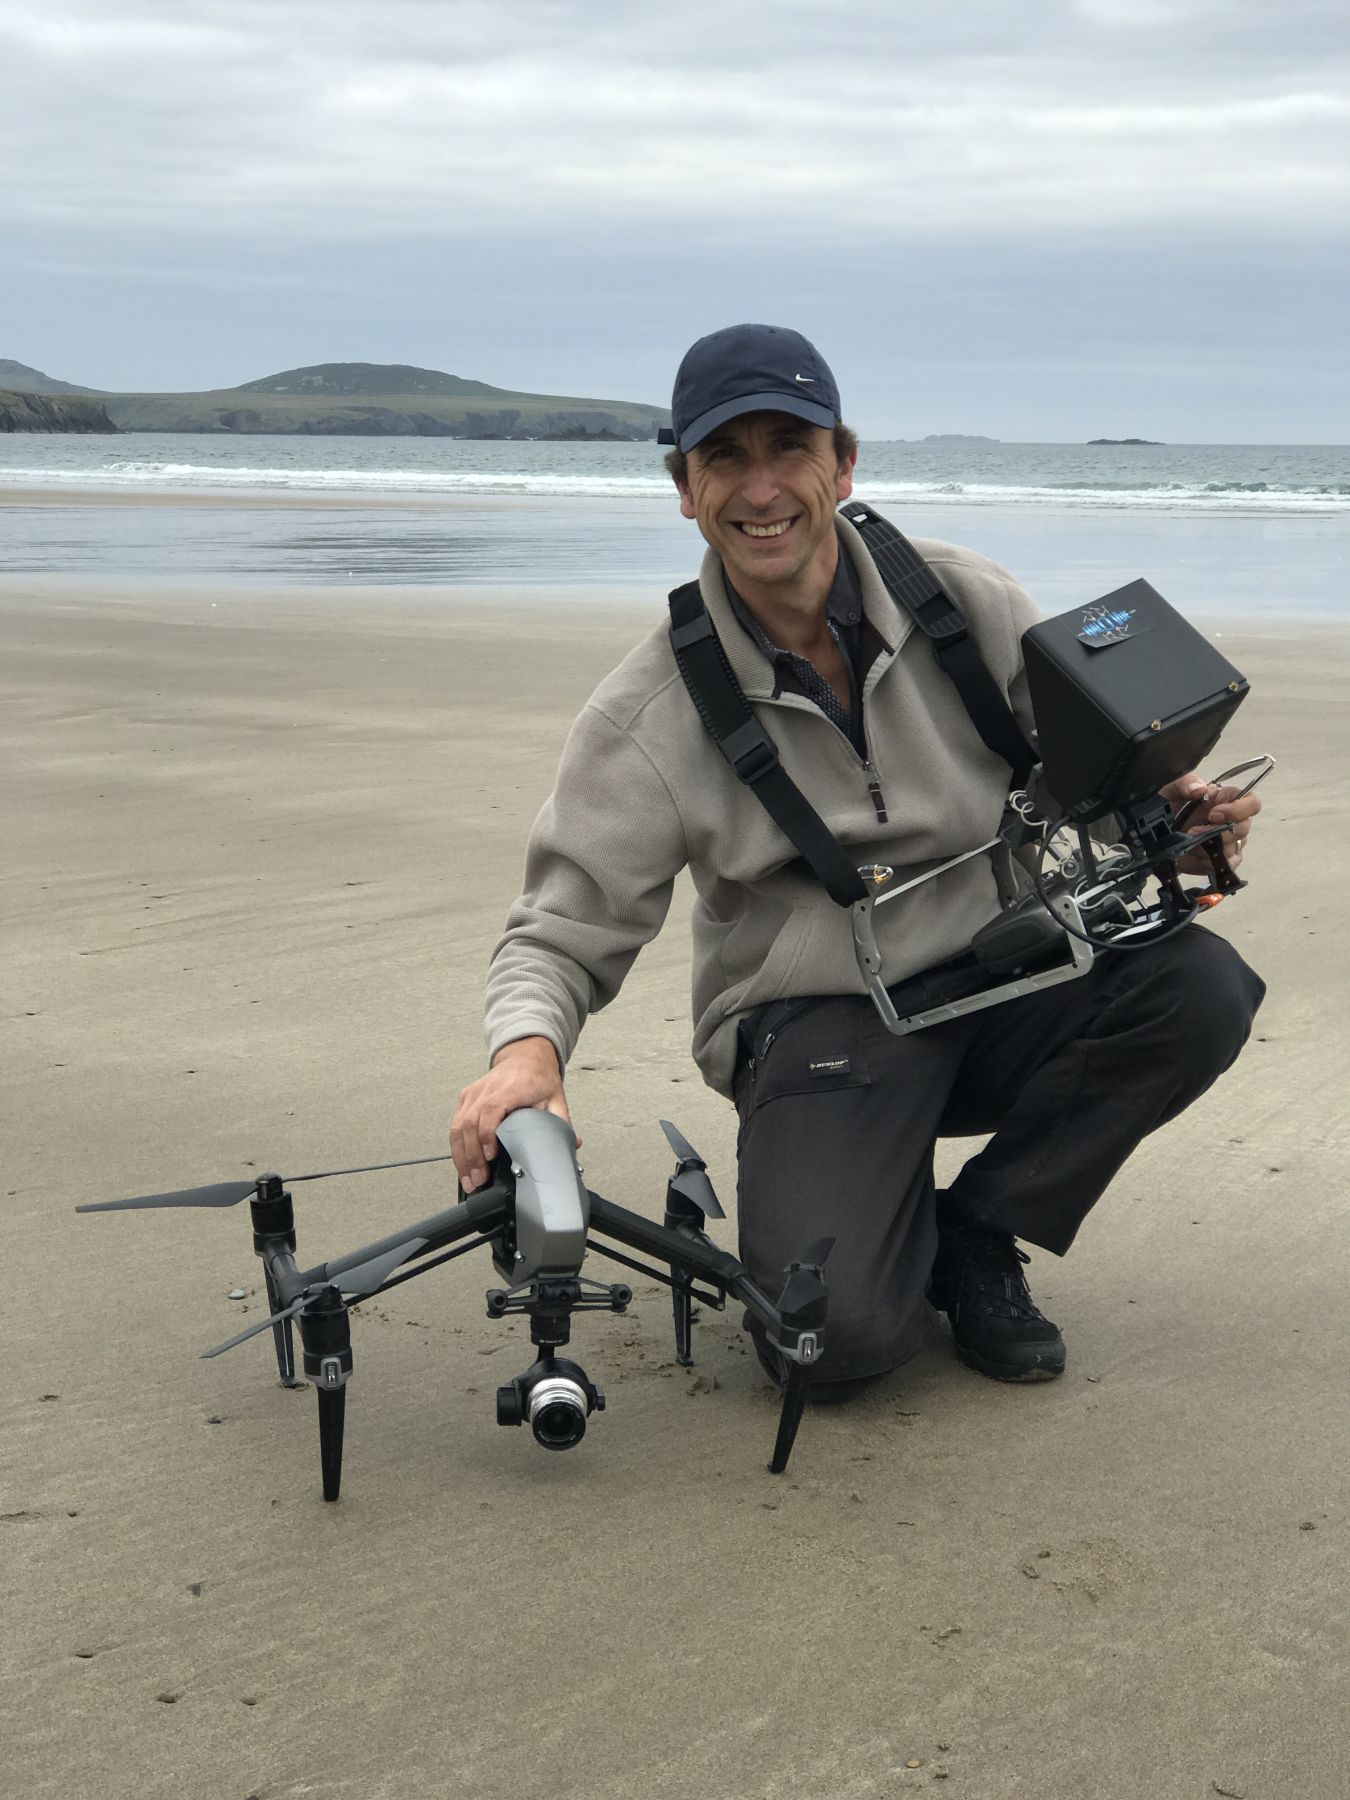 Drone Pilot on the beach